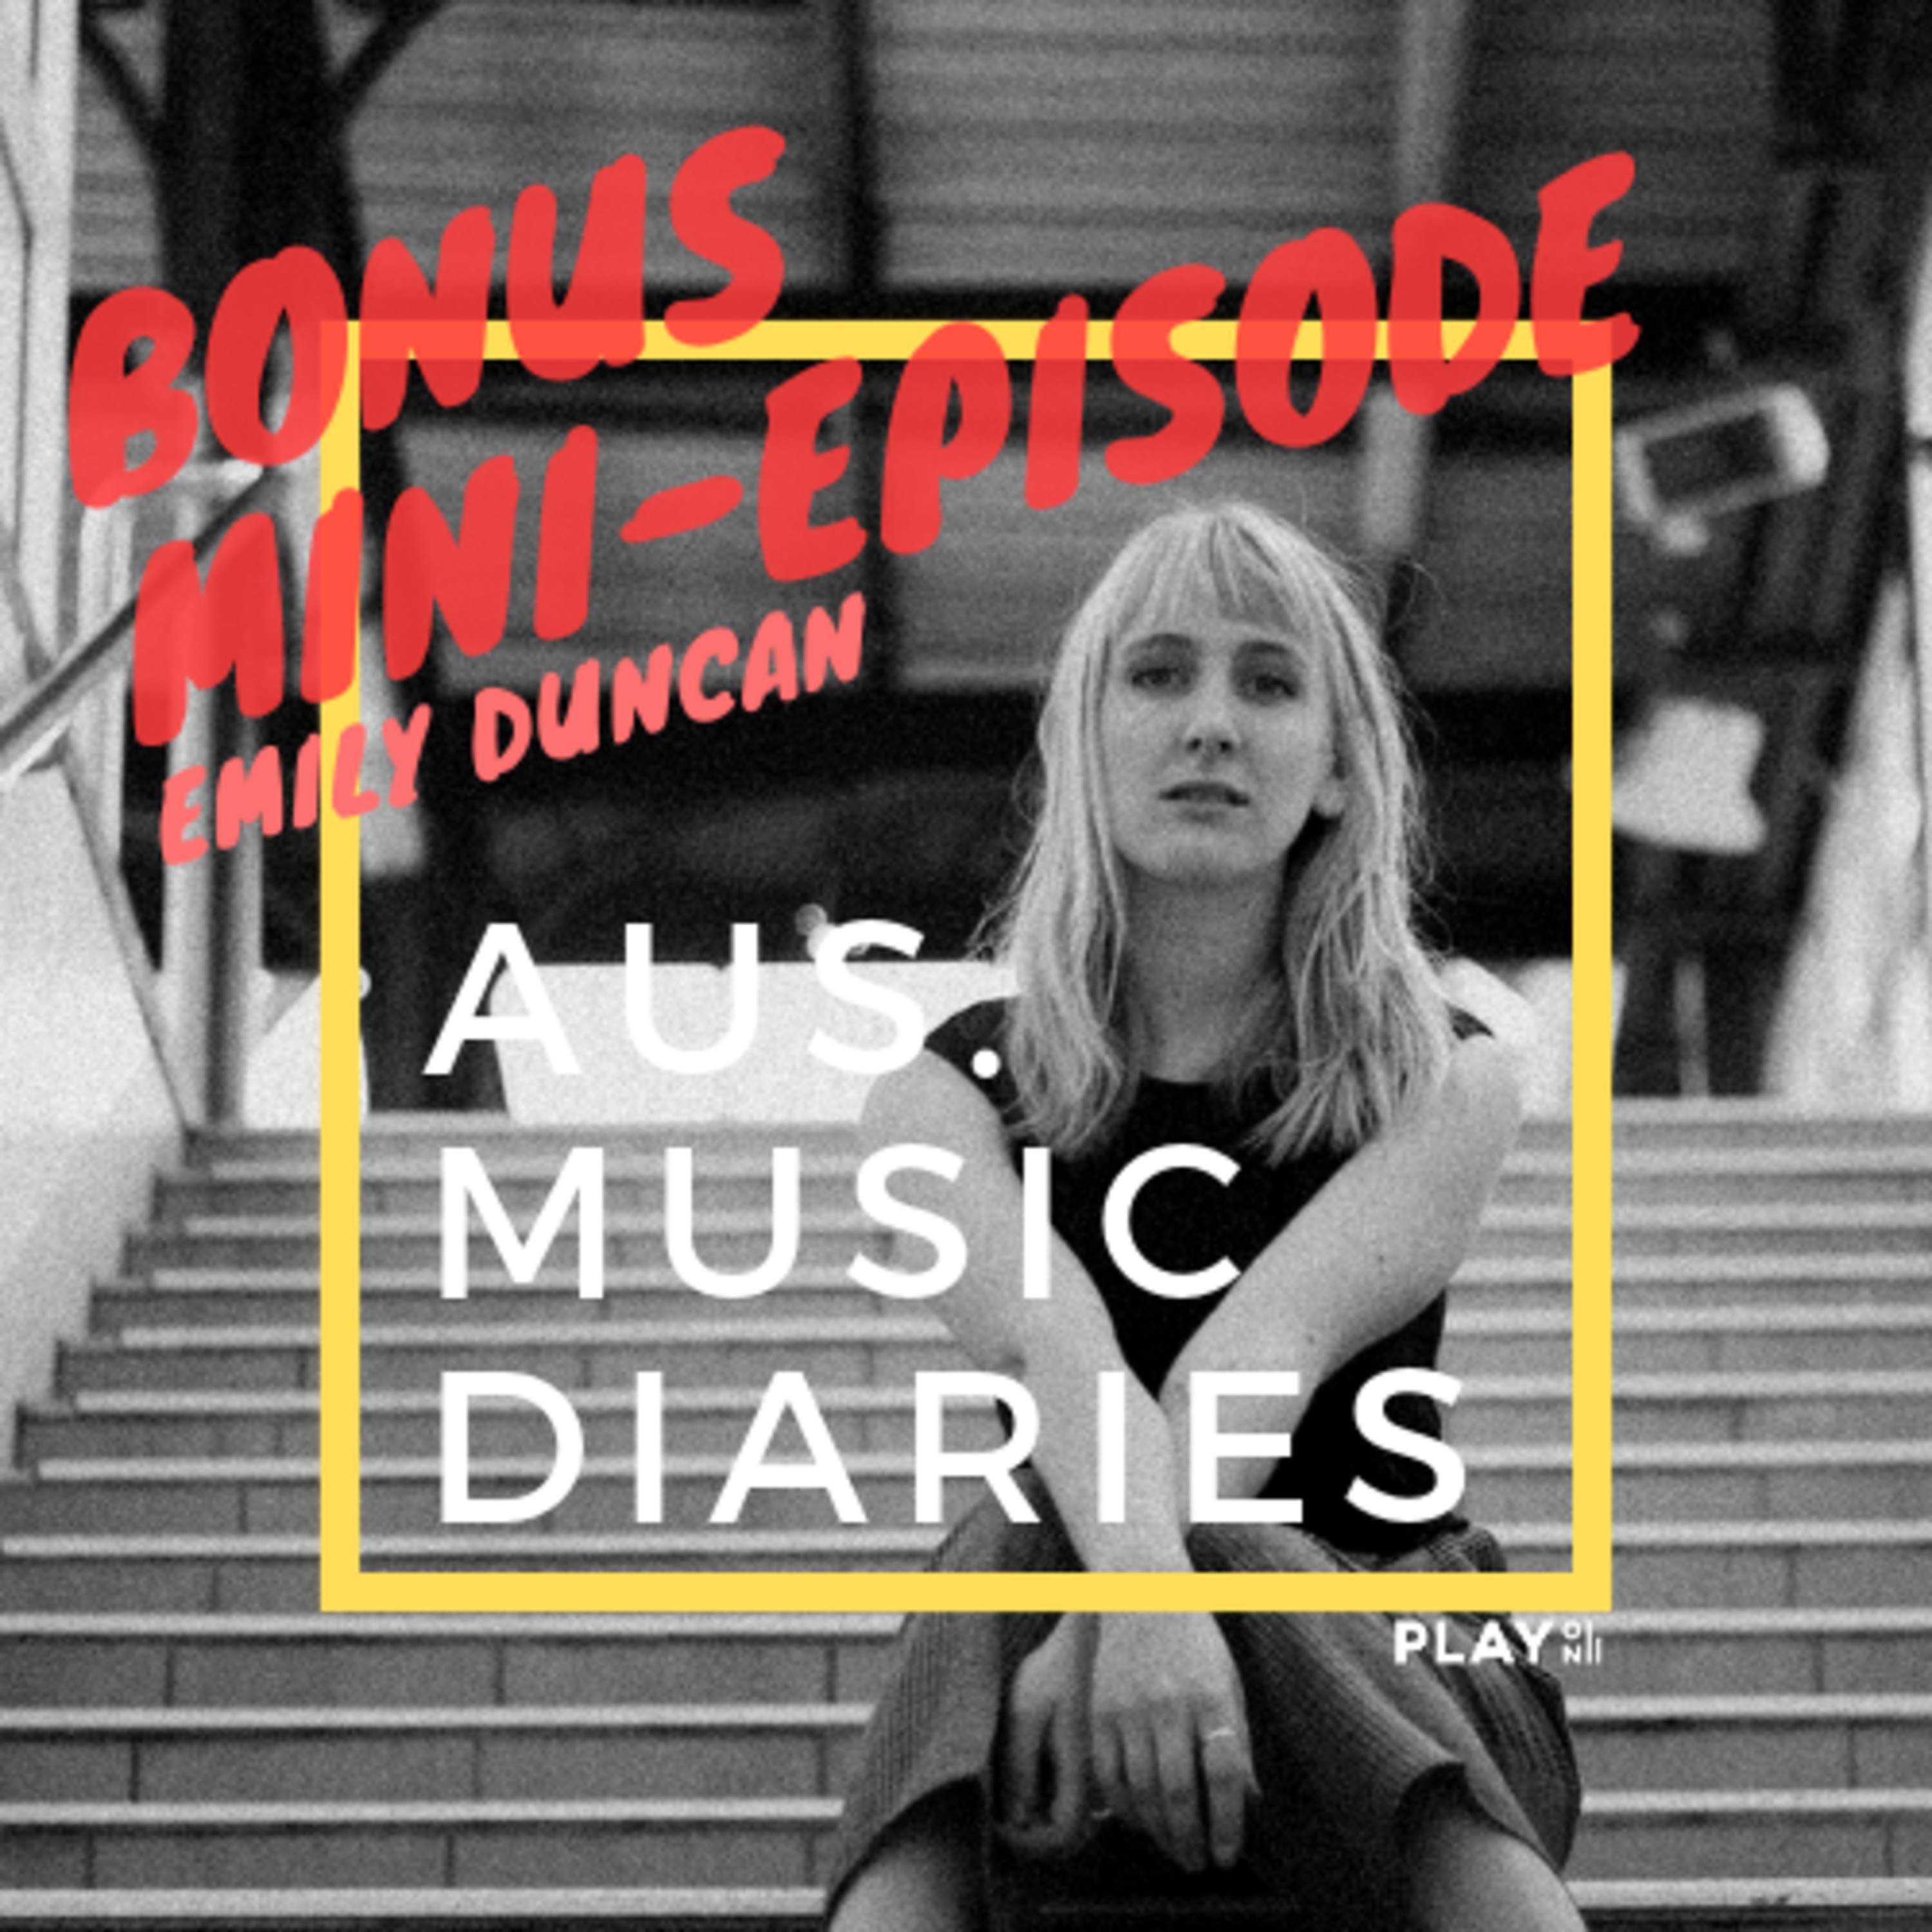 Bonus Guest Episode: Emily Duncan spreads the good word for The Buoys